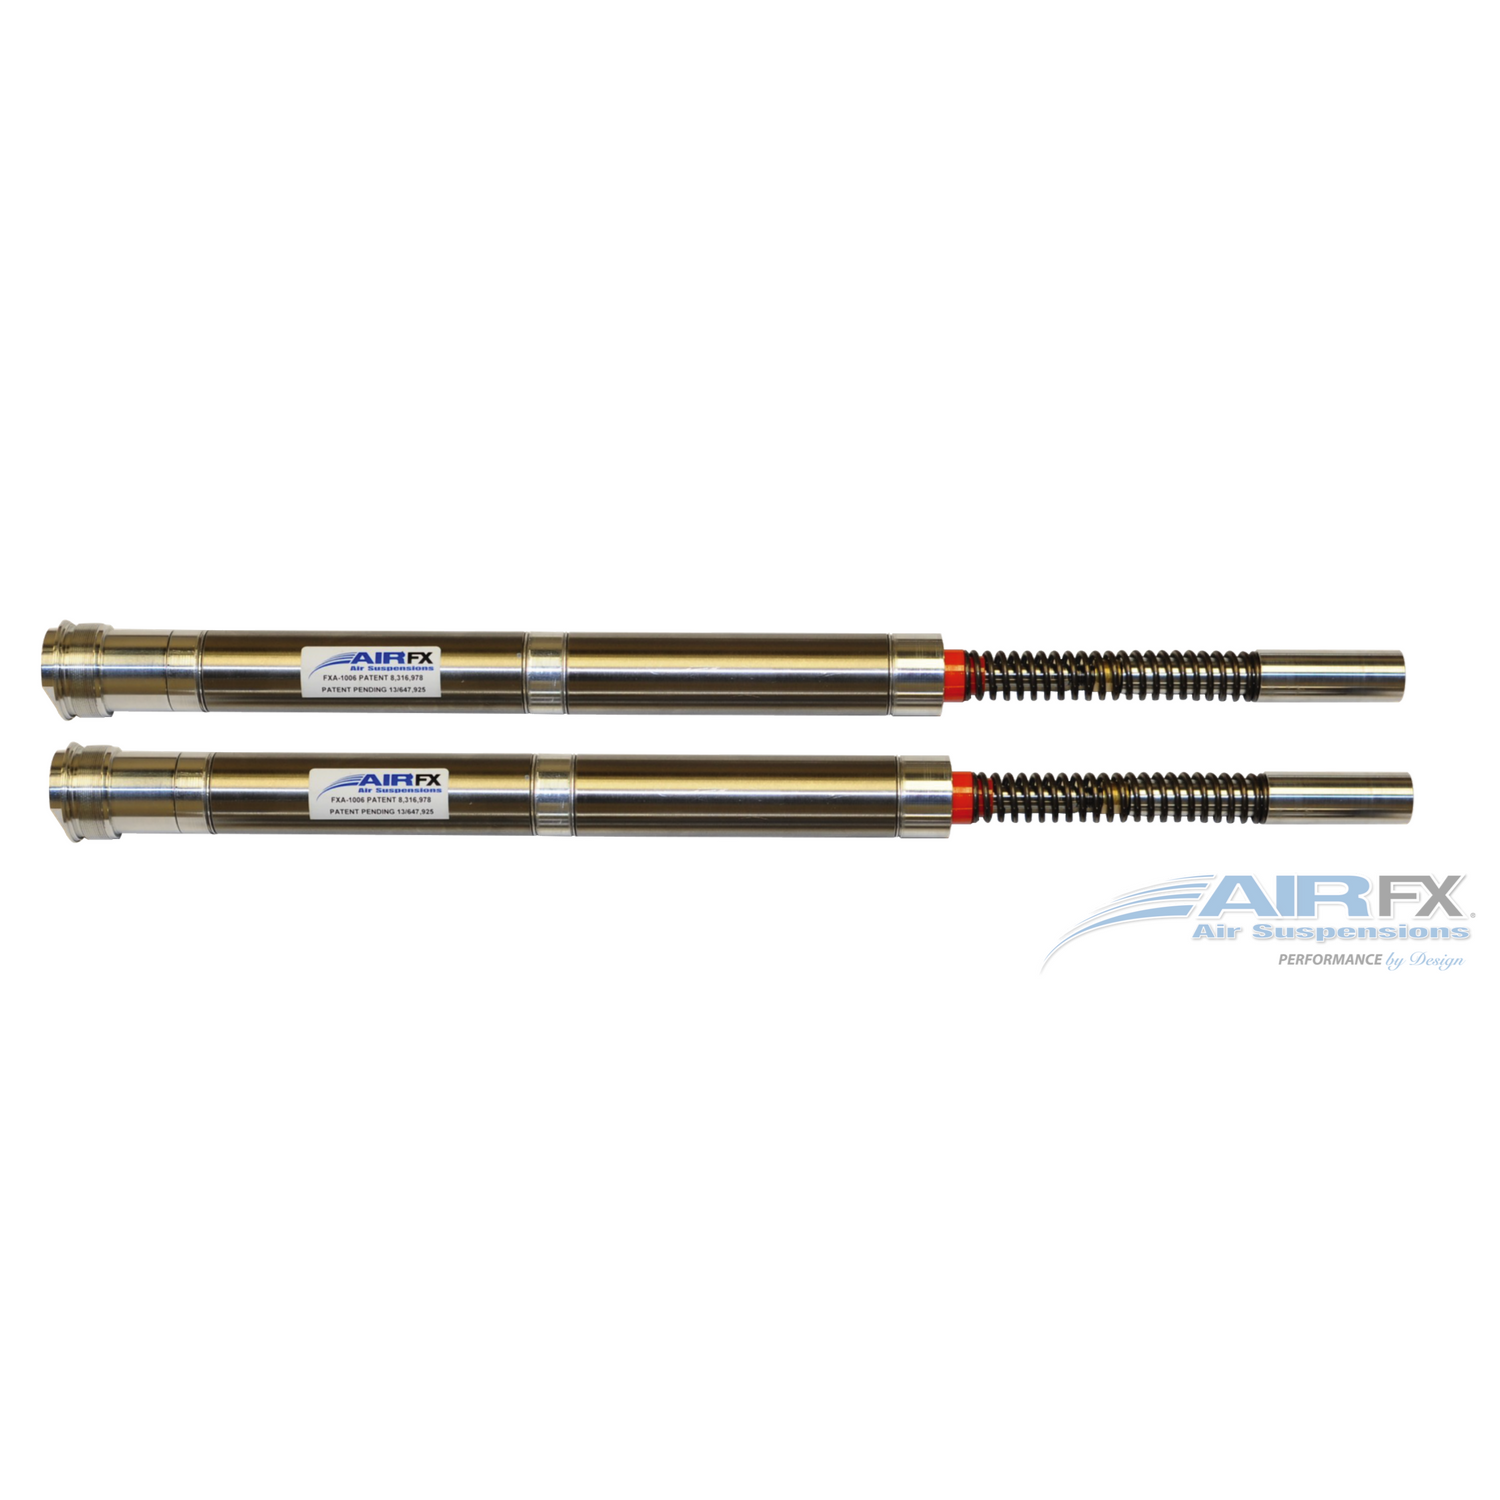 Front Cartridge Pair for Hawg Halters Triple Trees 26'' front wheel (or 30'' short neck) (FXA-2020-2-1) [+$1,570.00]